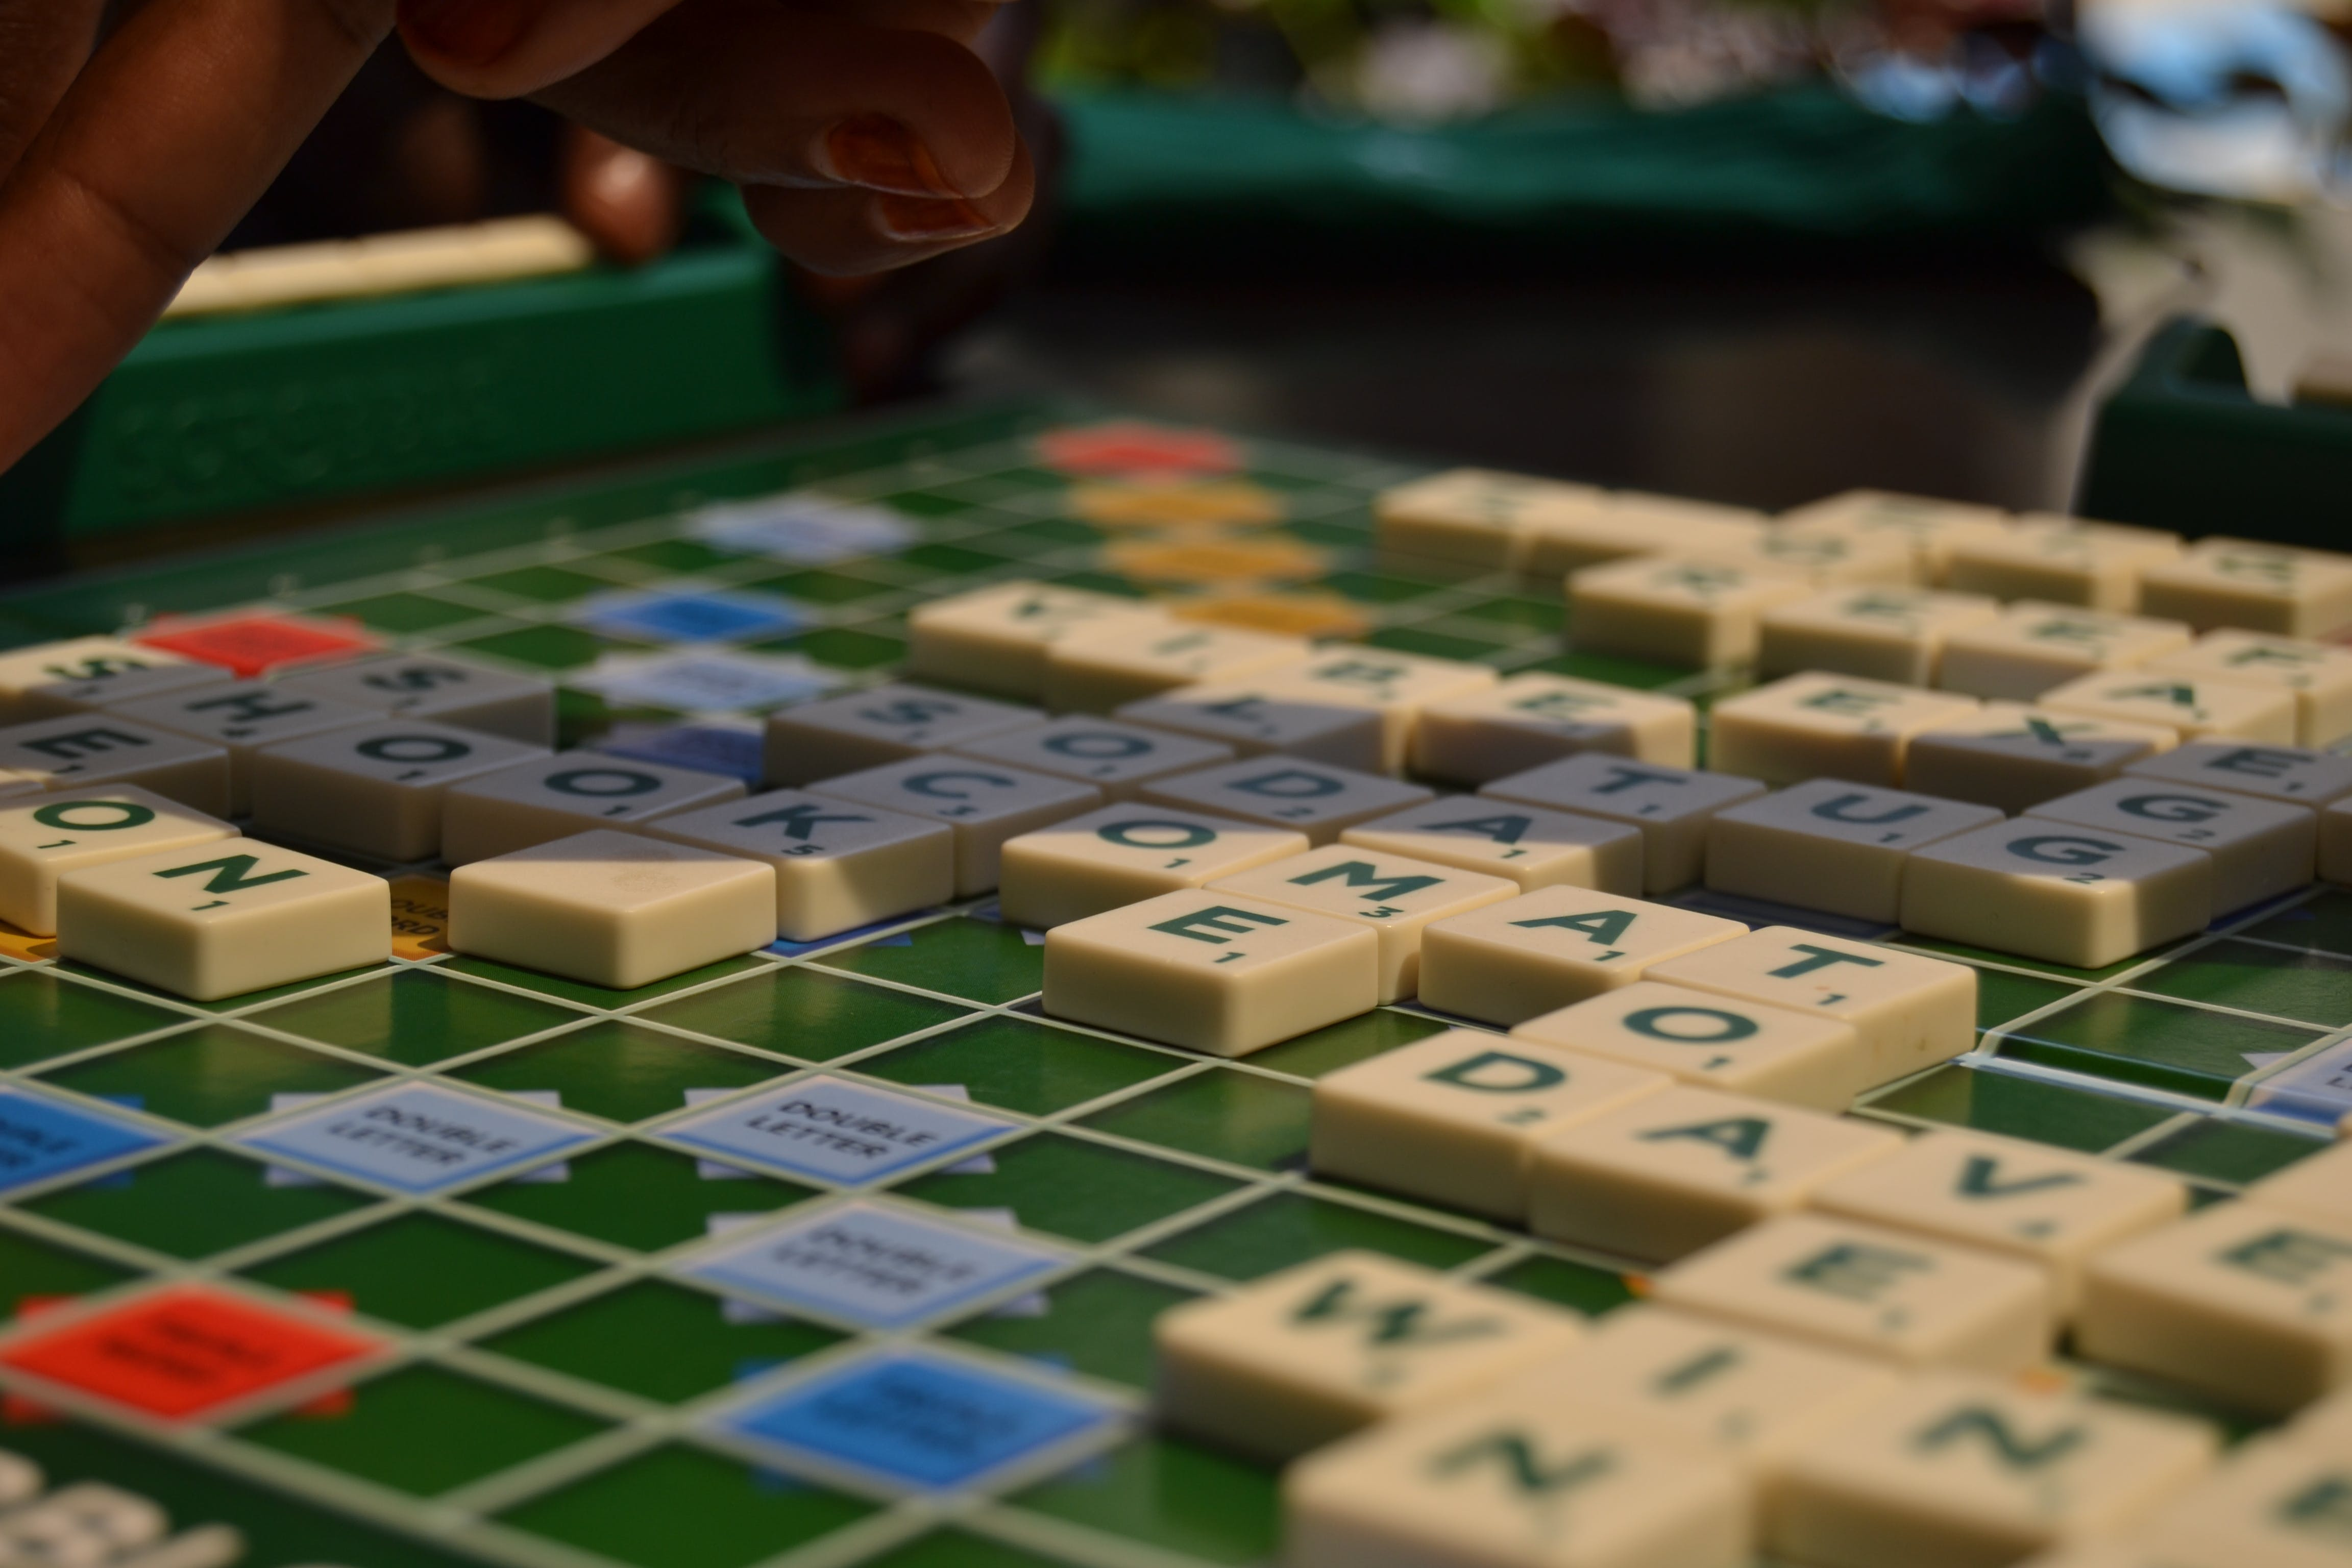 Free stock photo of scrabble